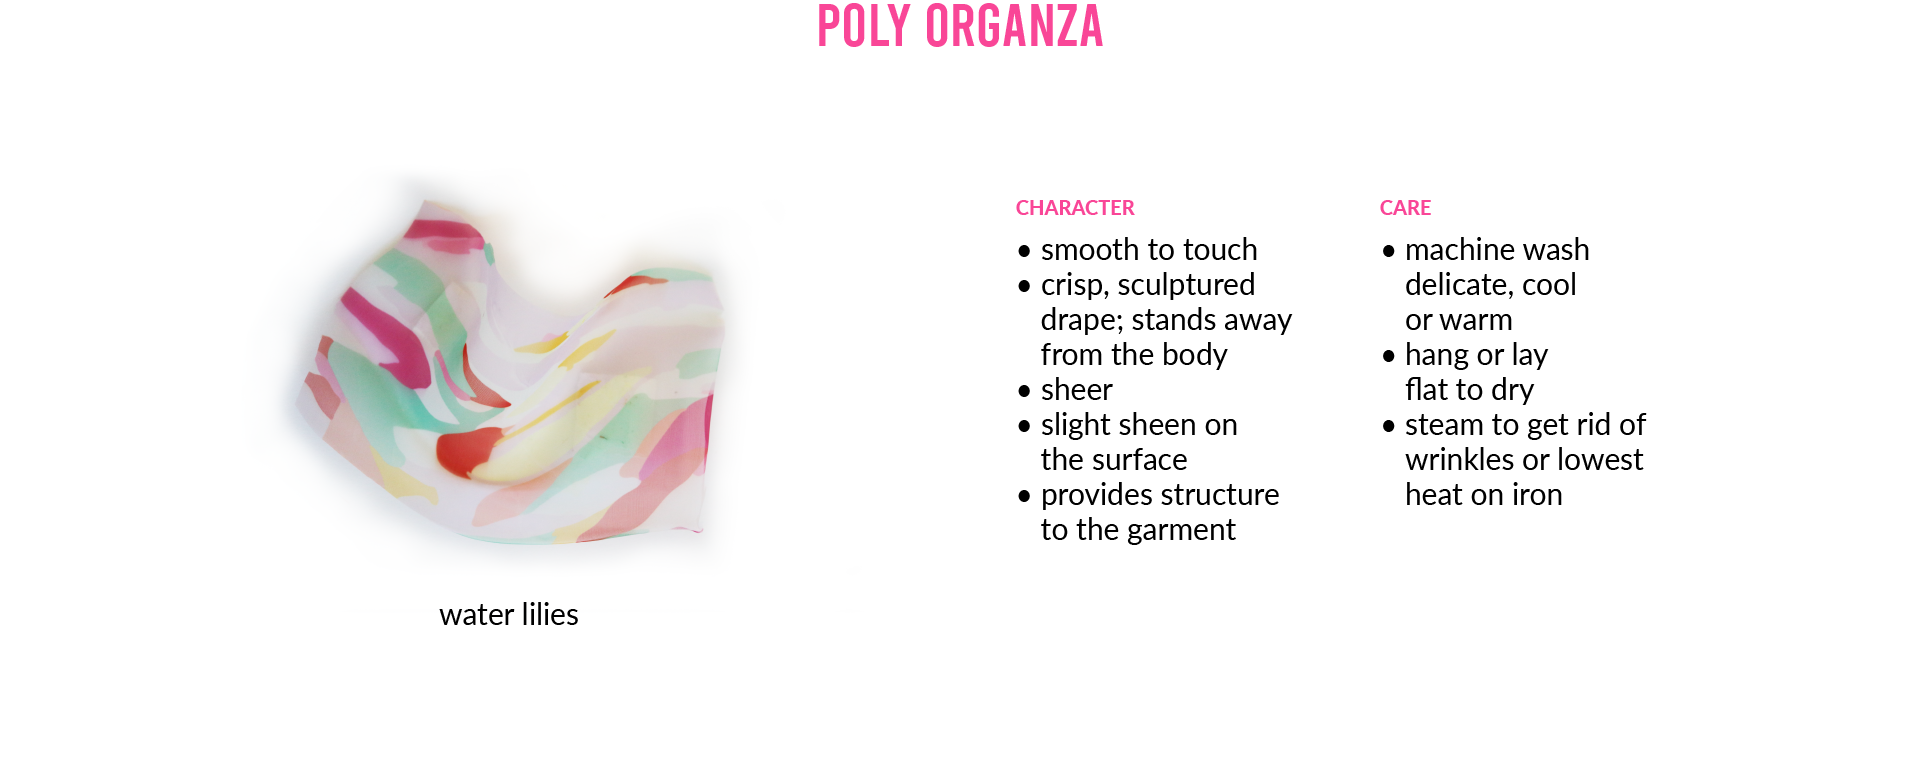 Poly OrganzaCHARACTER • smooth to touch • crisp, sculptured drape; stands away from the body • sheer • slight sheen on the surface • provides structure to the garmentCARE • machine wash delicate, cool or warm • hang or lay flat to dry • steam to get rid of wrinkles or lowest heat on iron